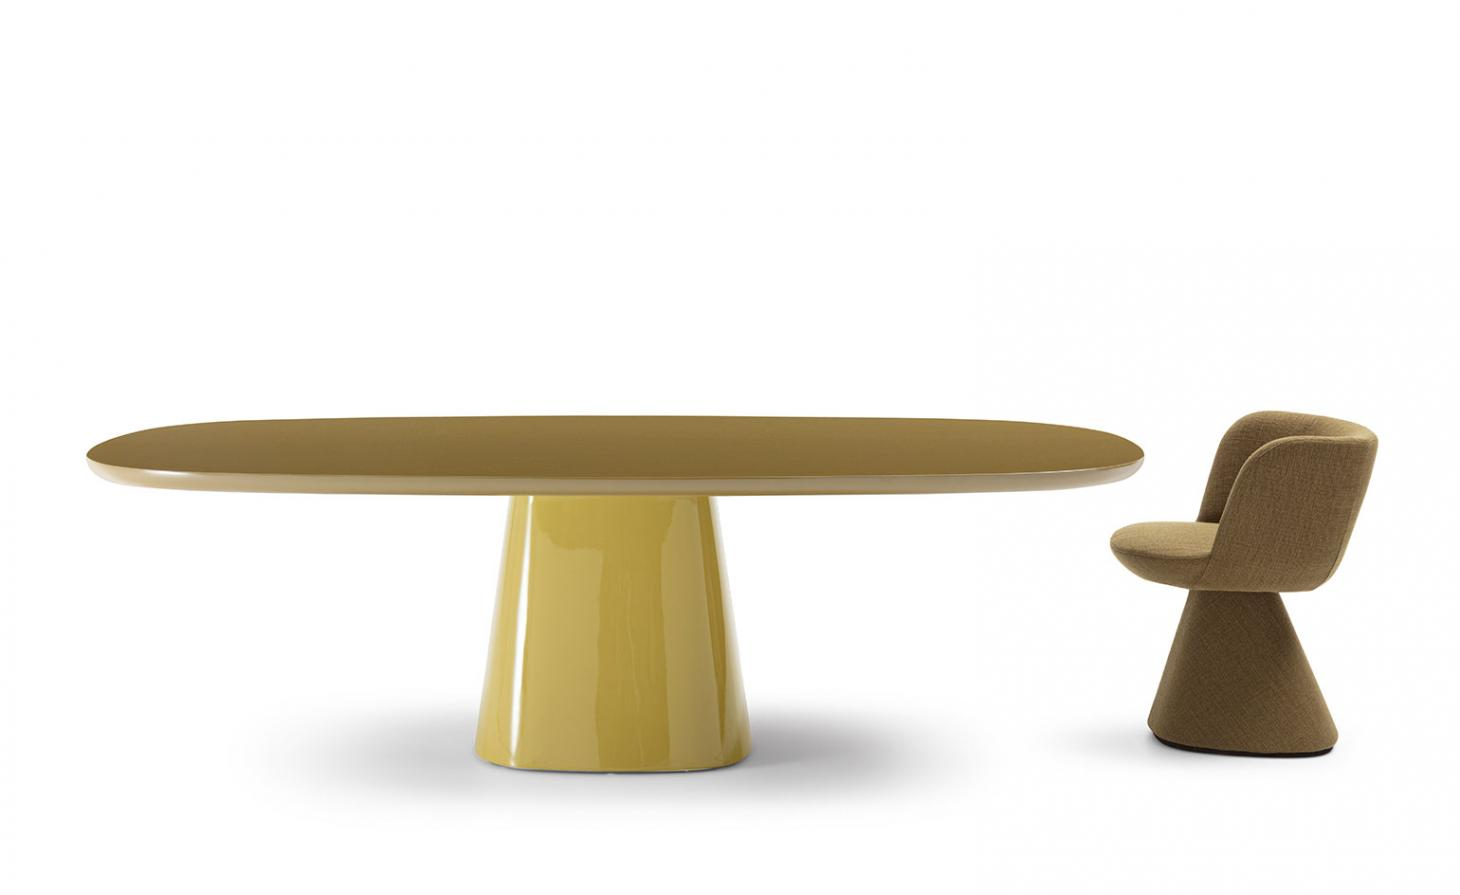 Yellow glossy table and textile upholstered chair by Monica Armani for B&B Italia